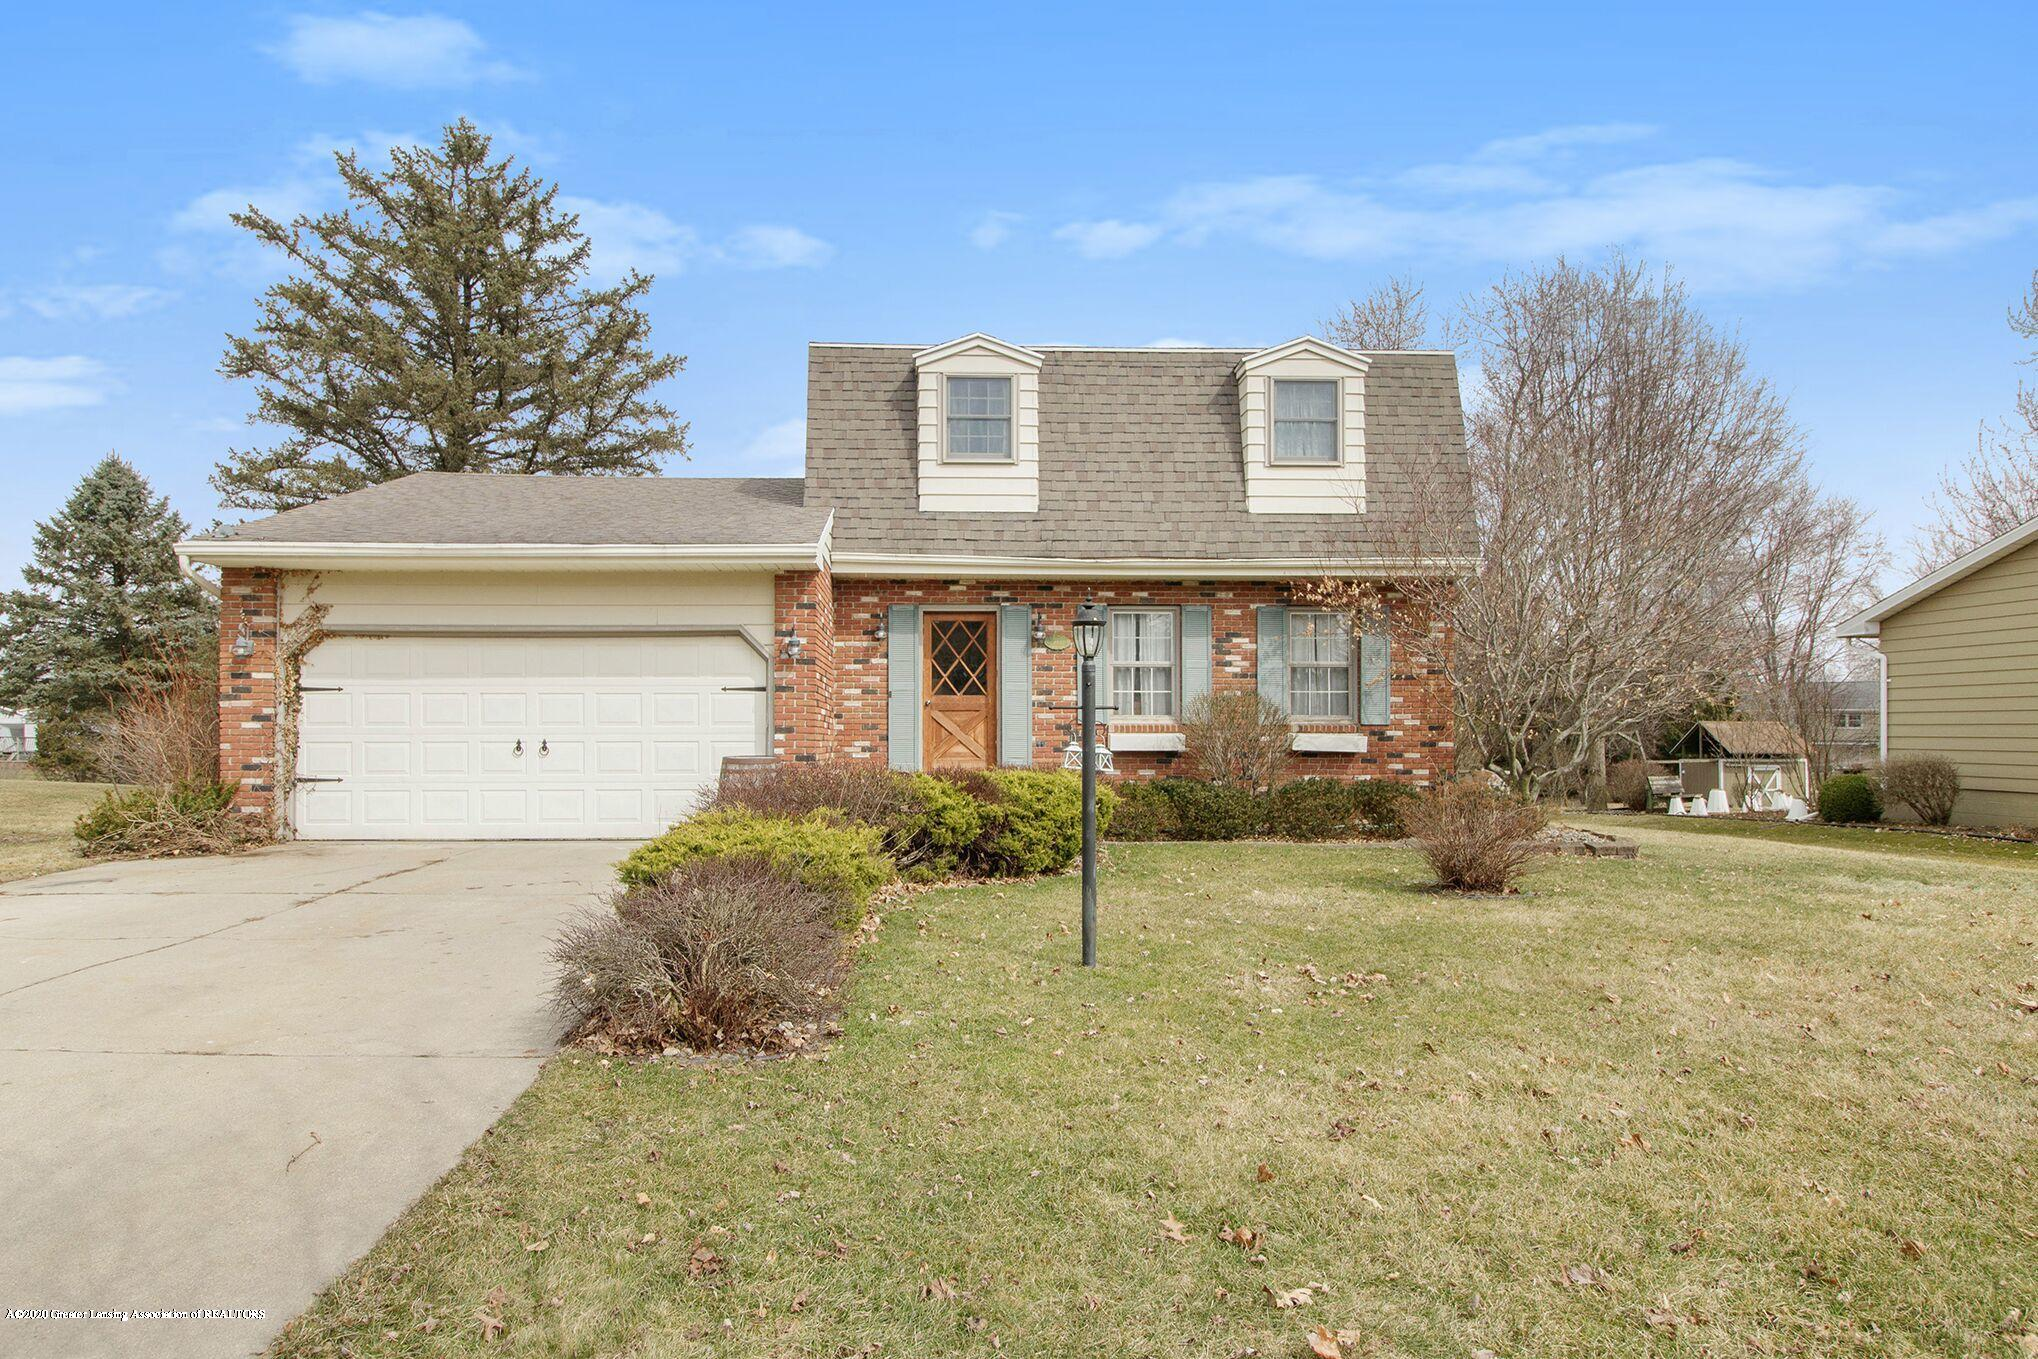 12816 Greenfield - Front Photo - 1